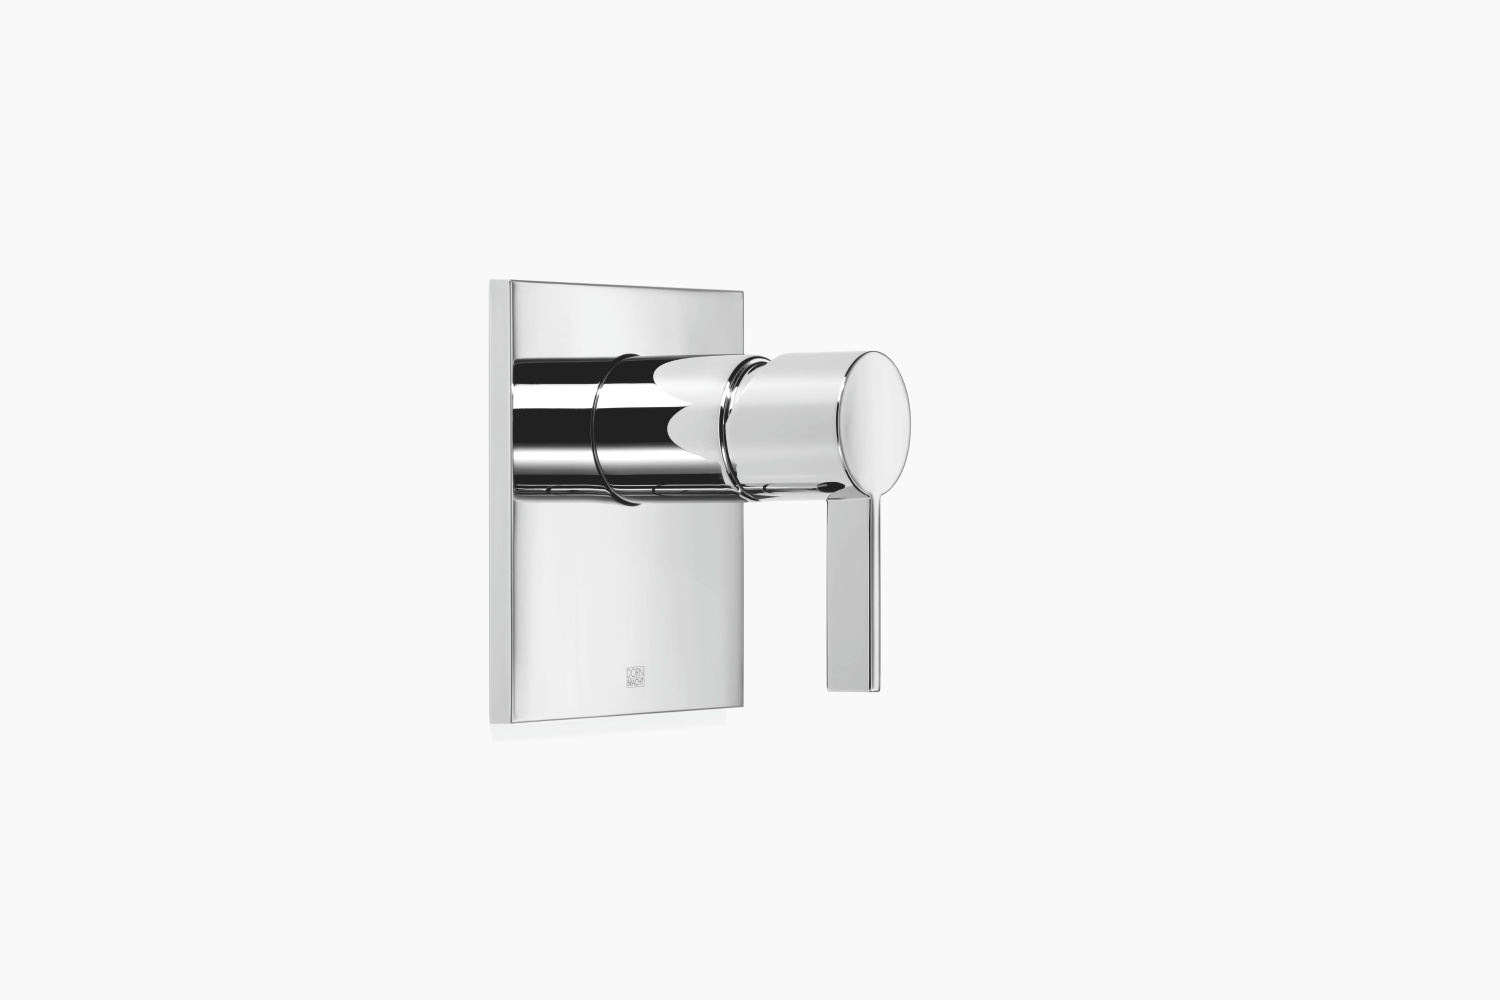 xSTREAM Concealed single-lever mixer without diverter - platinum matt